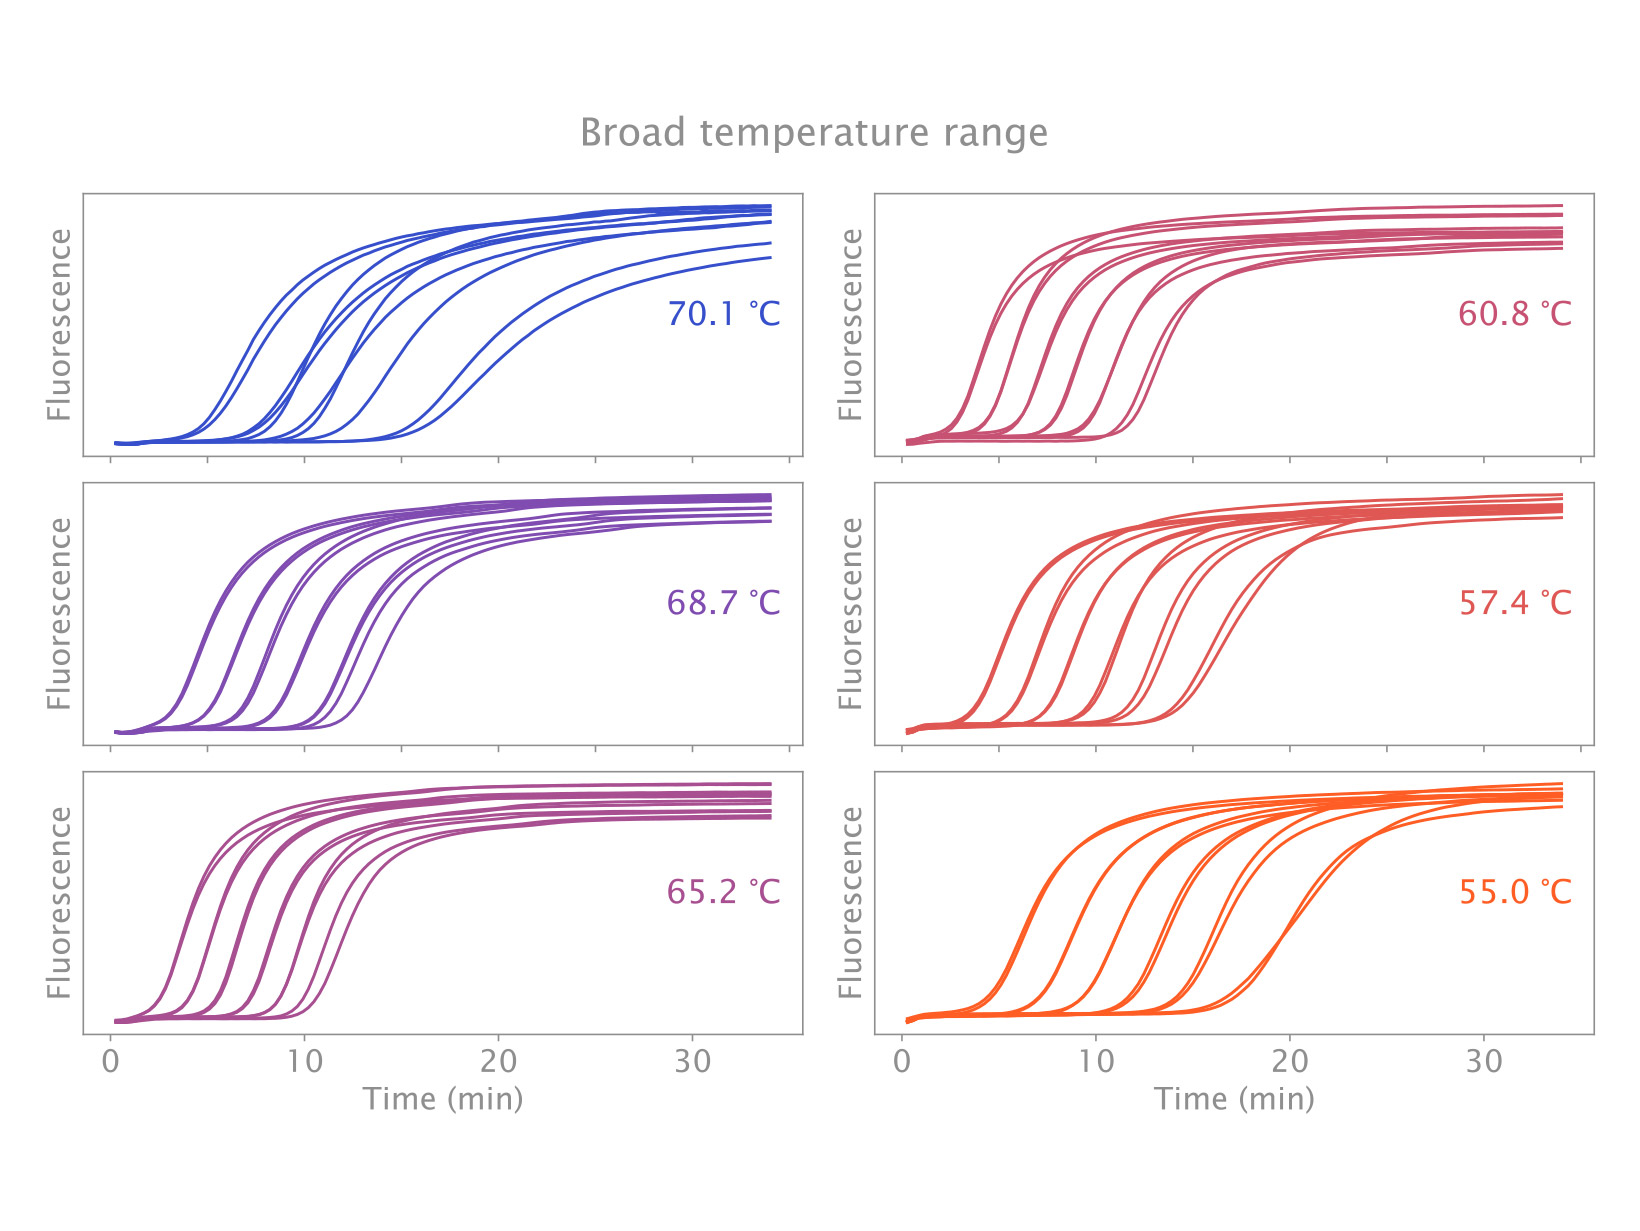 Data showing isothermal amplification of M13 scaffolding protein over a broad temperature range from 55°C to 70°C using IsoFast Bst Mix.